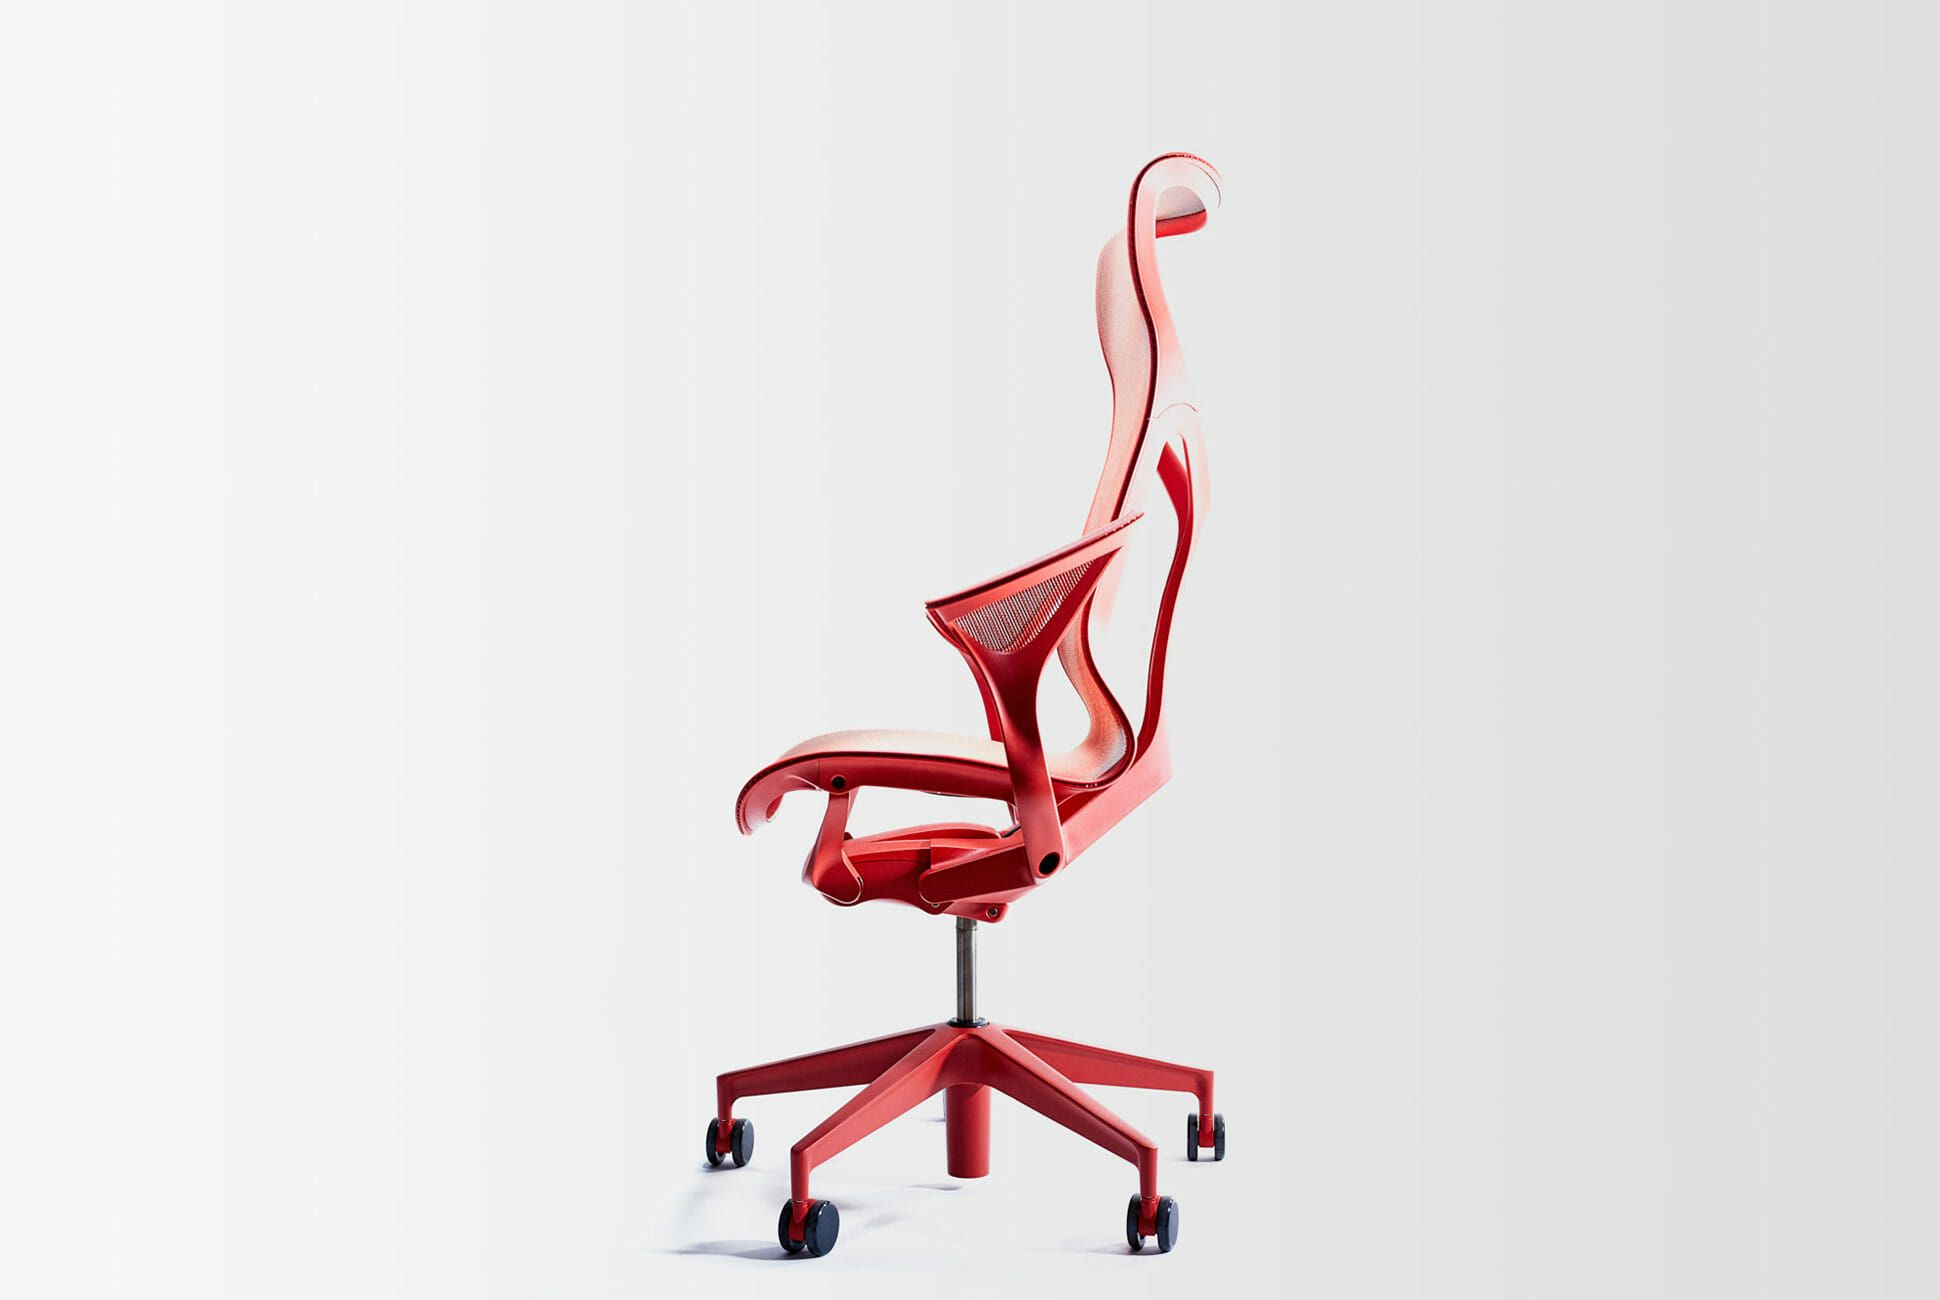 Working From Home Is Making People Crazy For Quality Office Chairs You Should Get Crazy Too